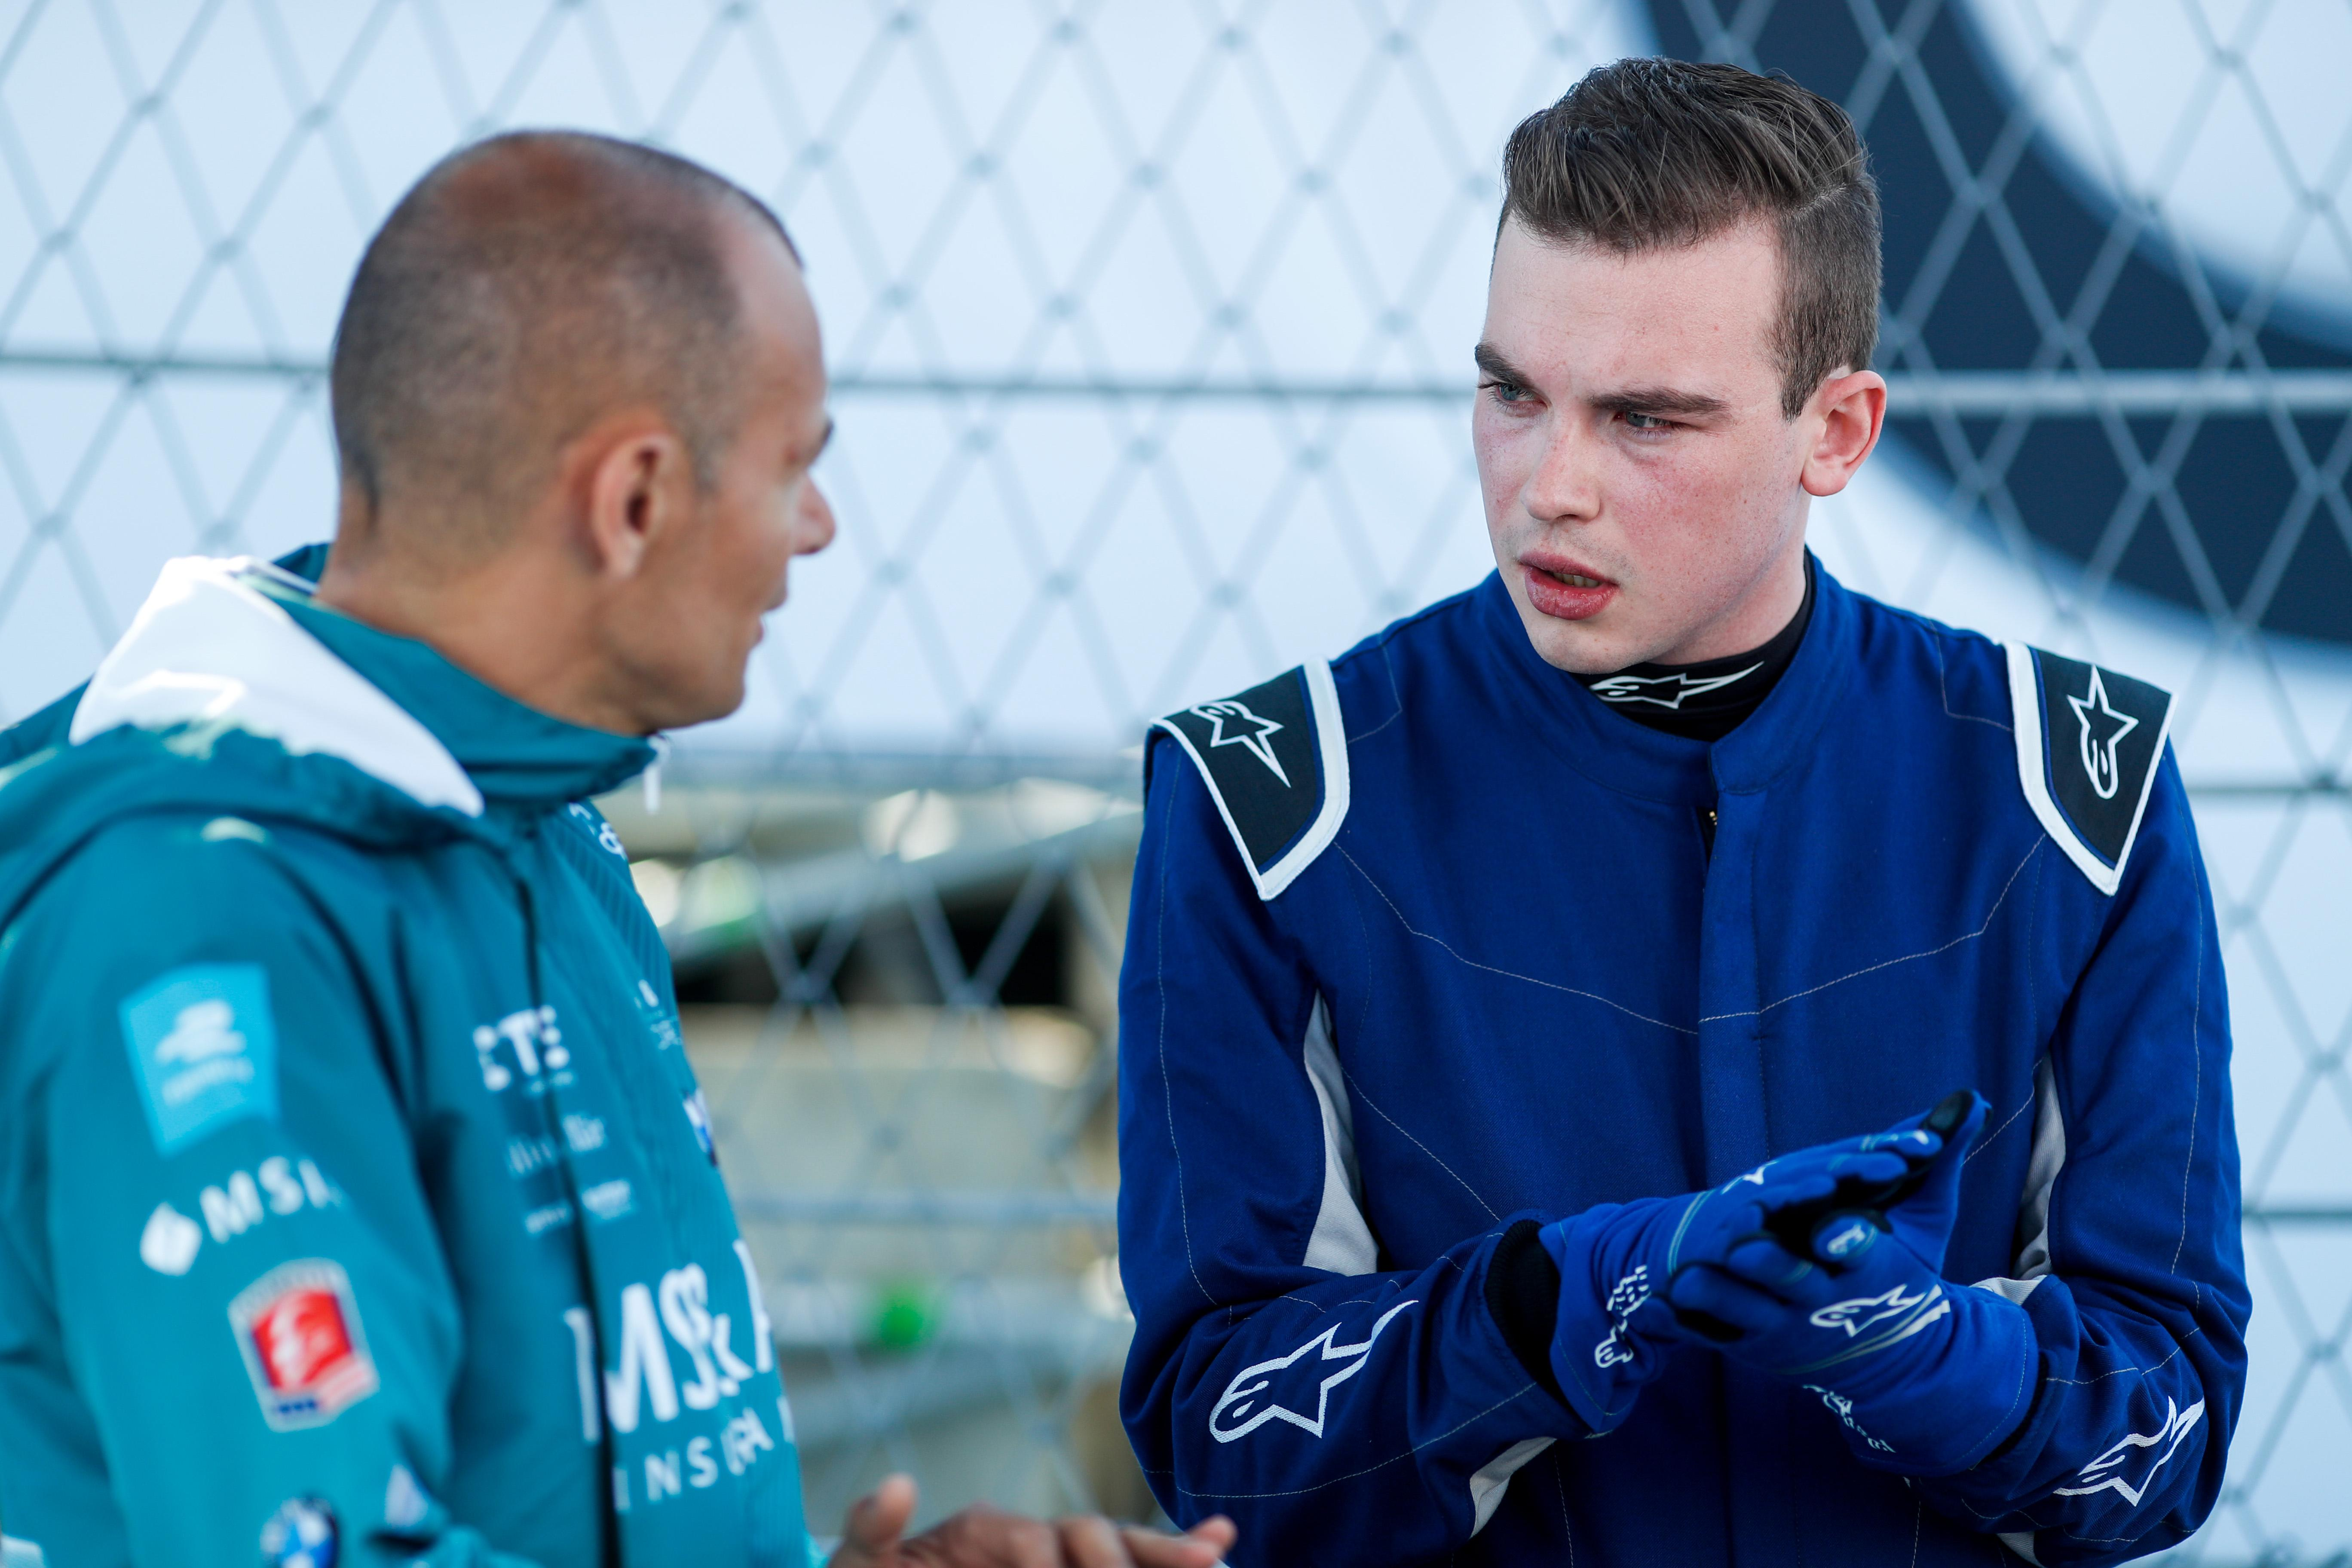 Stephane Sarrazin gave me tips and spoke about the track in detail before we got started